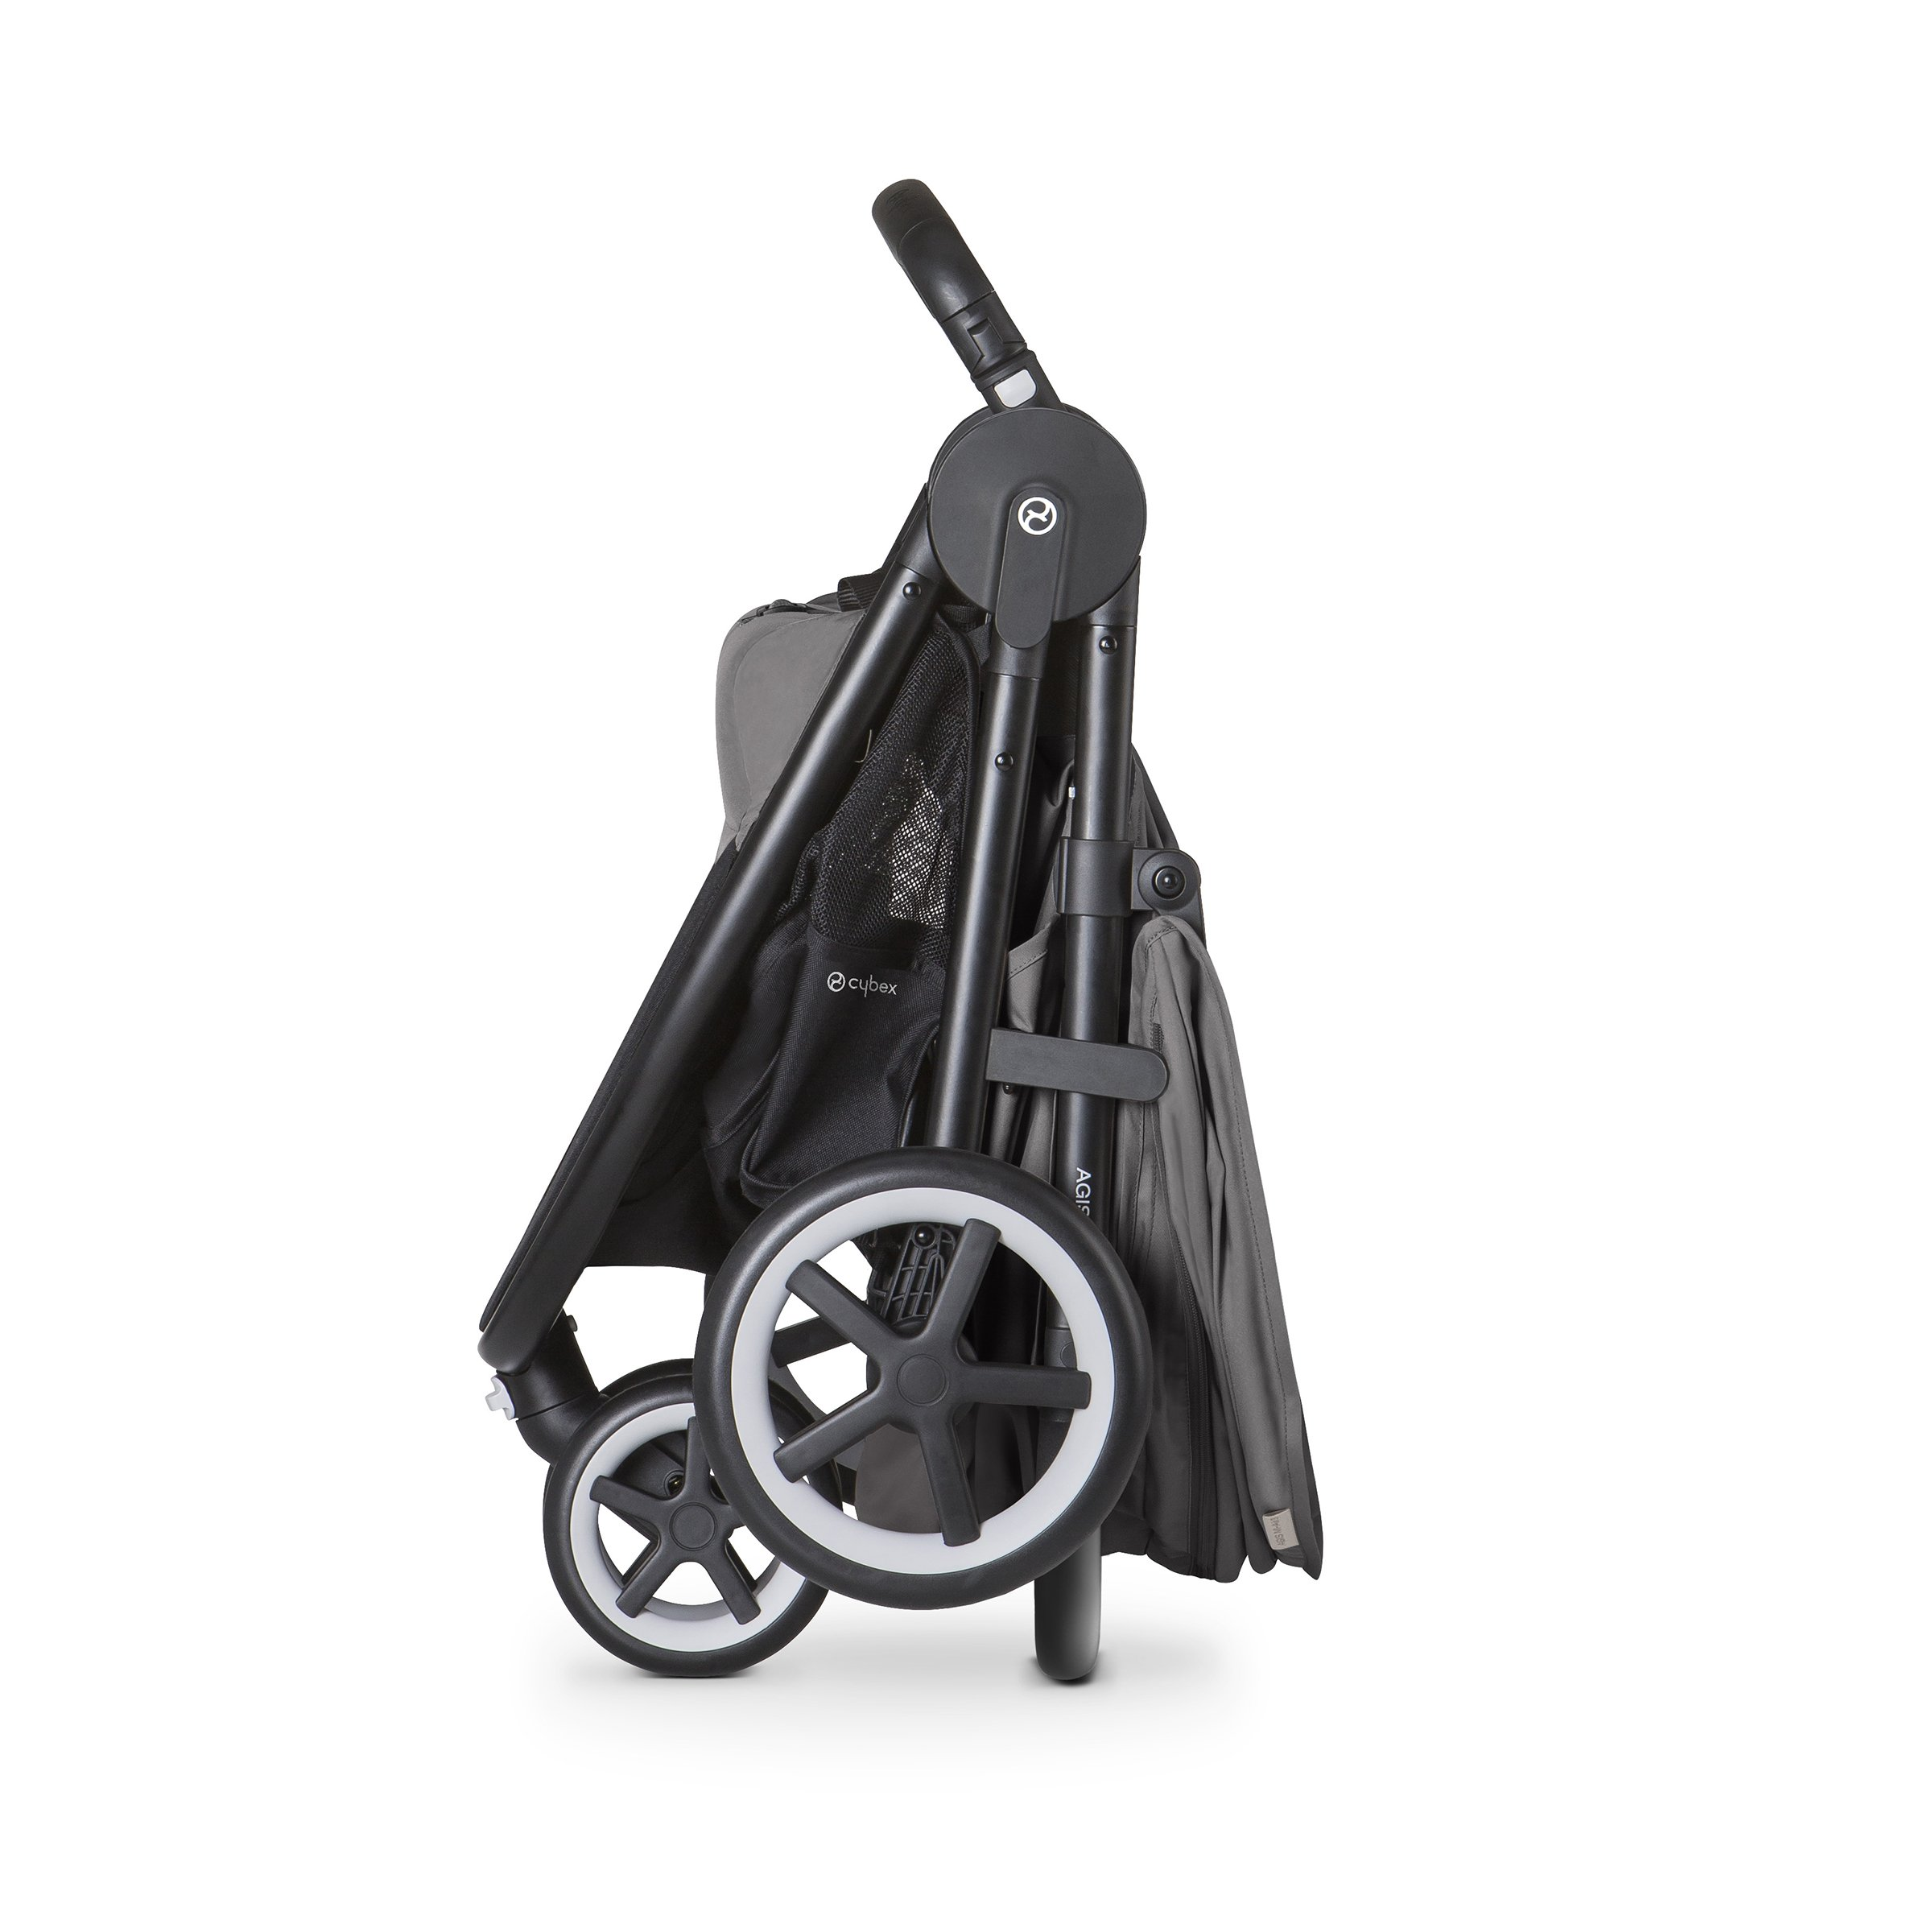 Cybex Agis M-Air 3/Aton/Aton Base Travel System, Moon Dust by Cybex (Image #3)